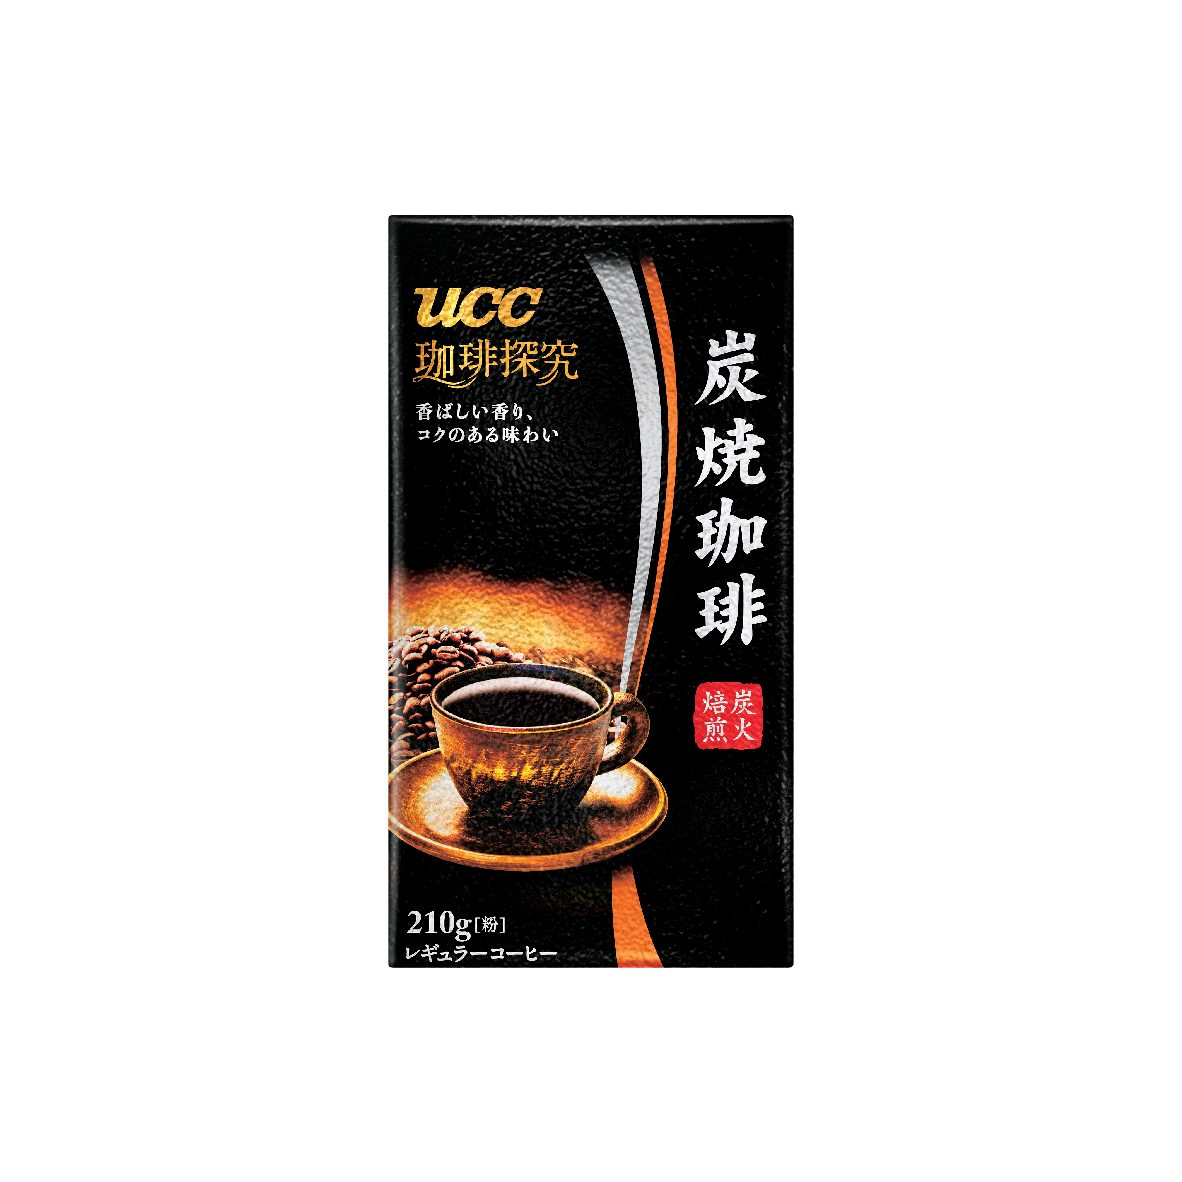 UCC Coffee Exploration Charcoal Roasted Coffee